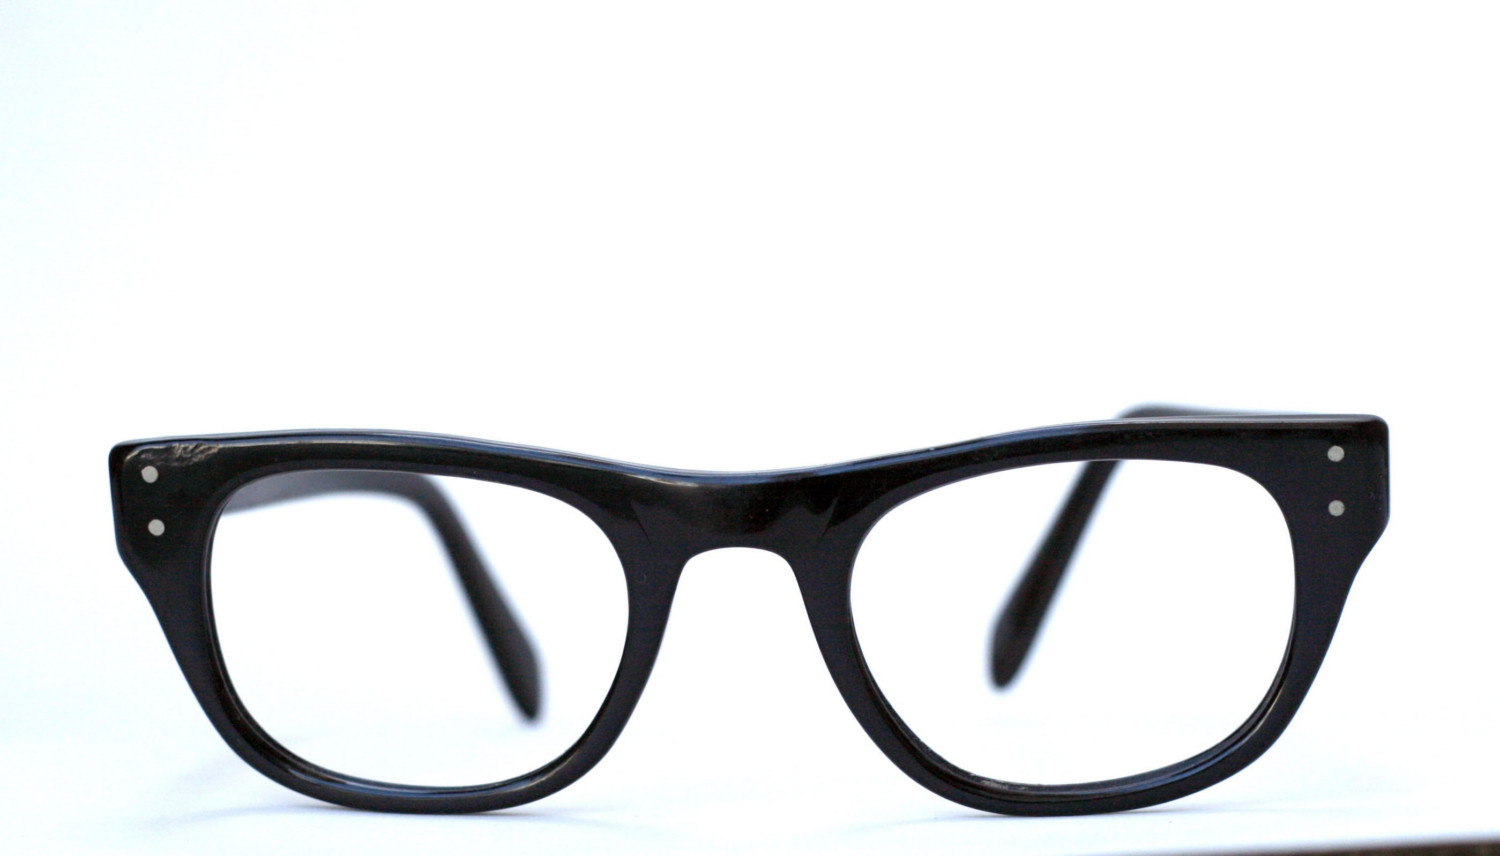 Eyeglass Frames Websites : looking for a website to see what id look like with ...